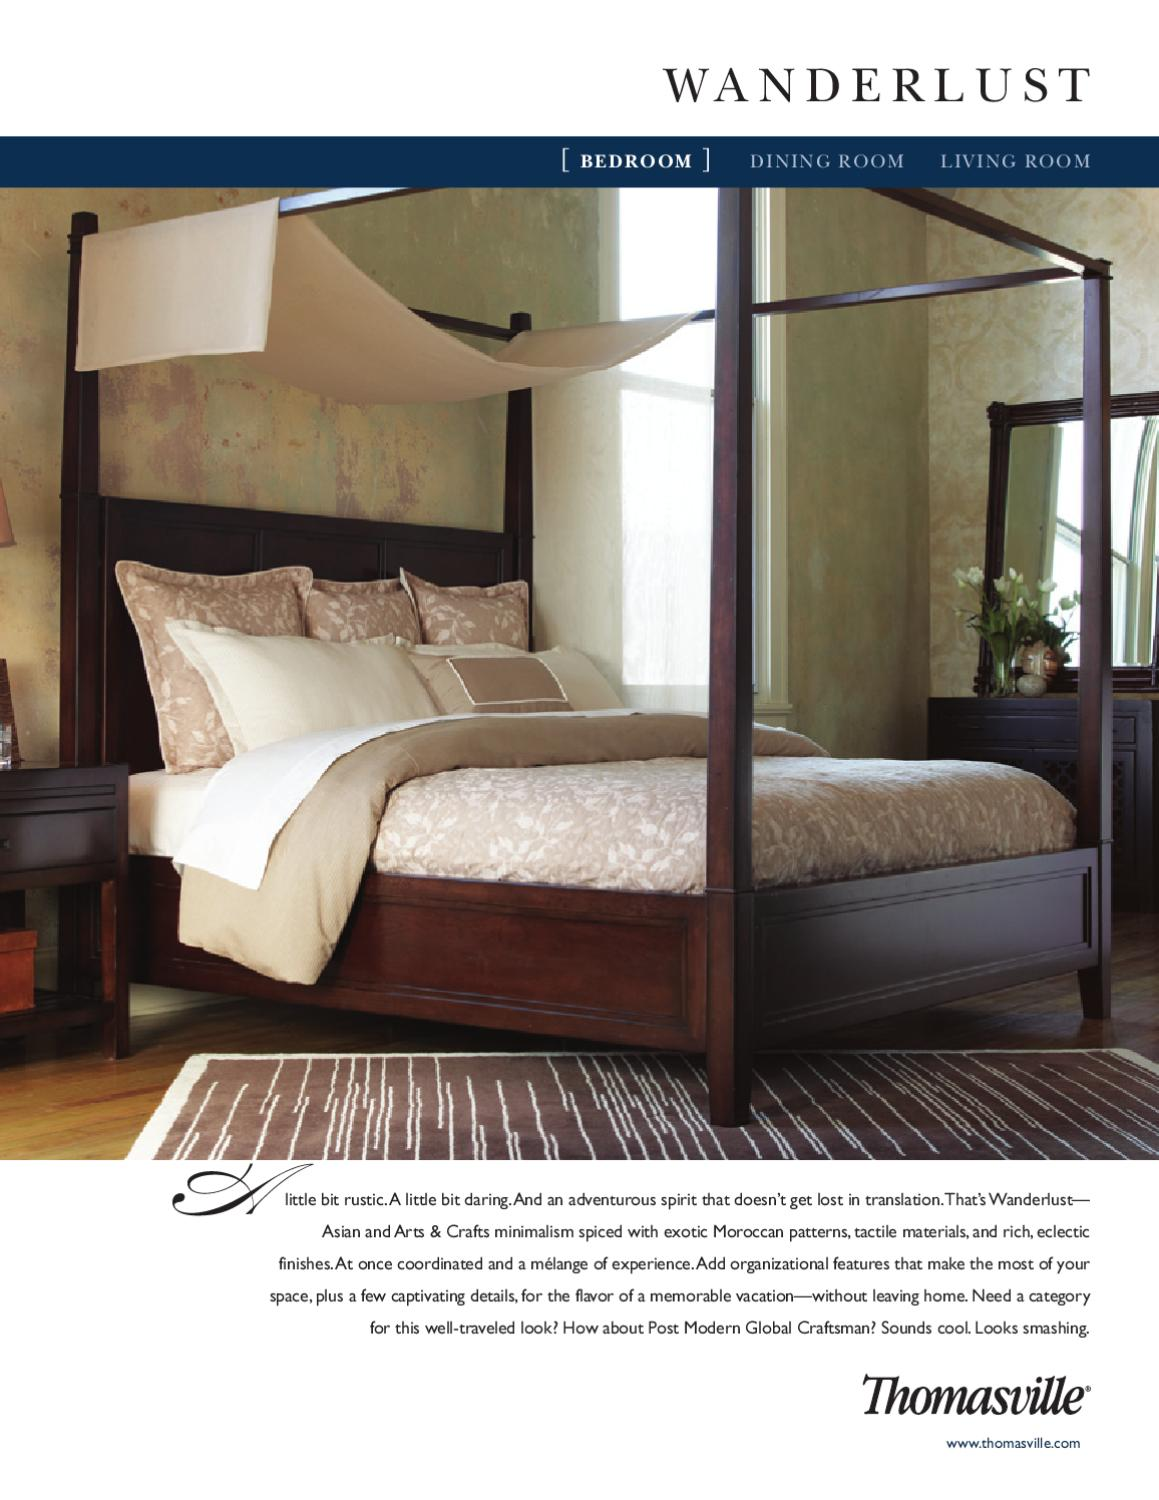 Thomasville- Wanderlust (Bedroom) by Cadieux & Company - issuu